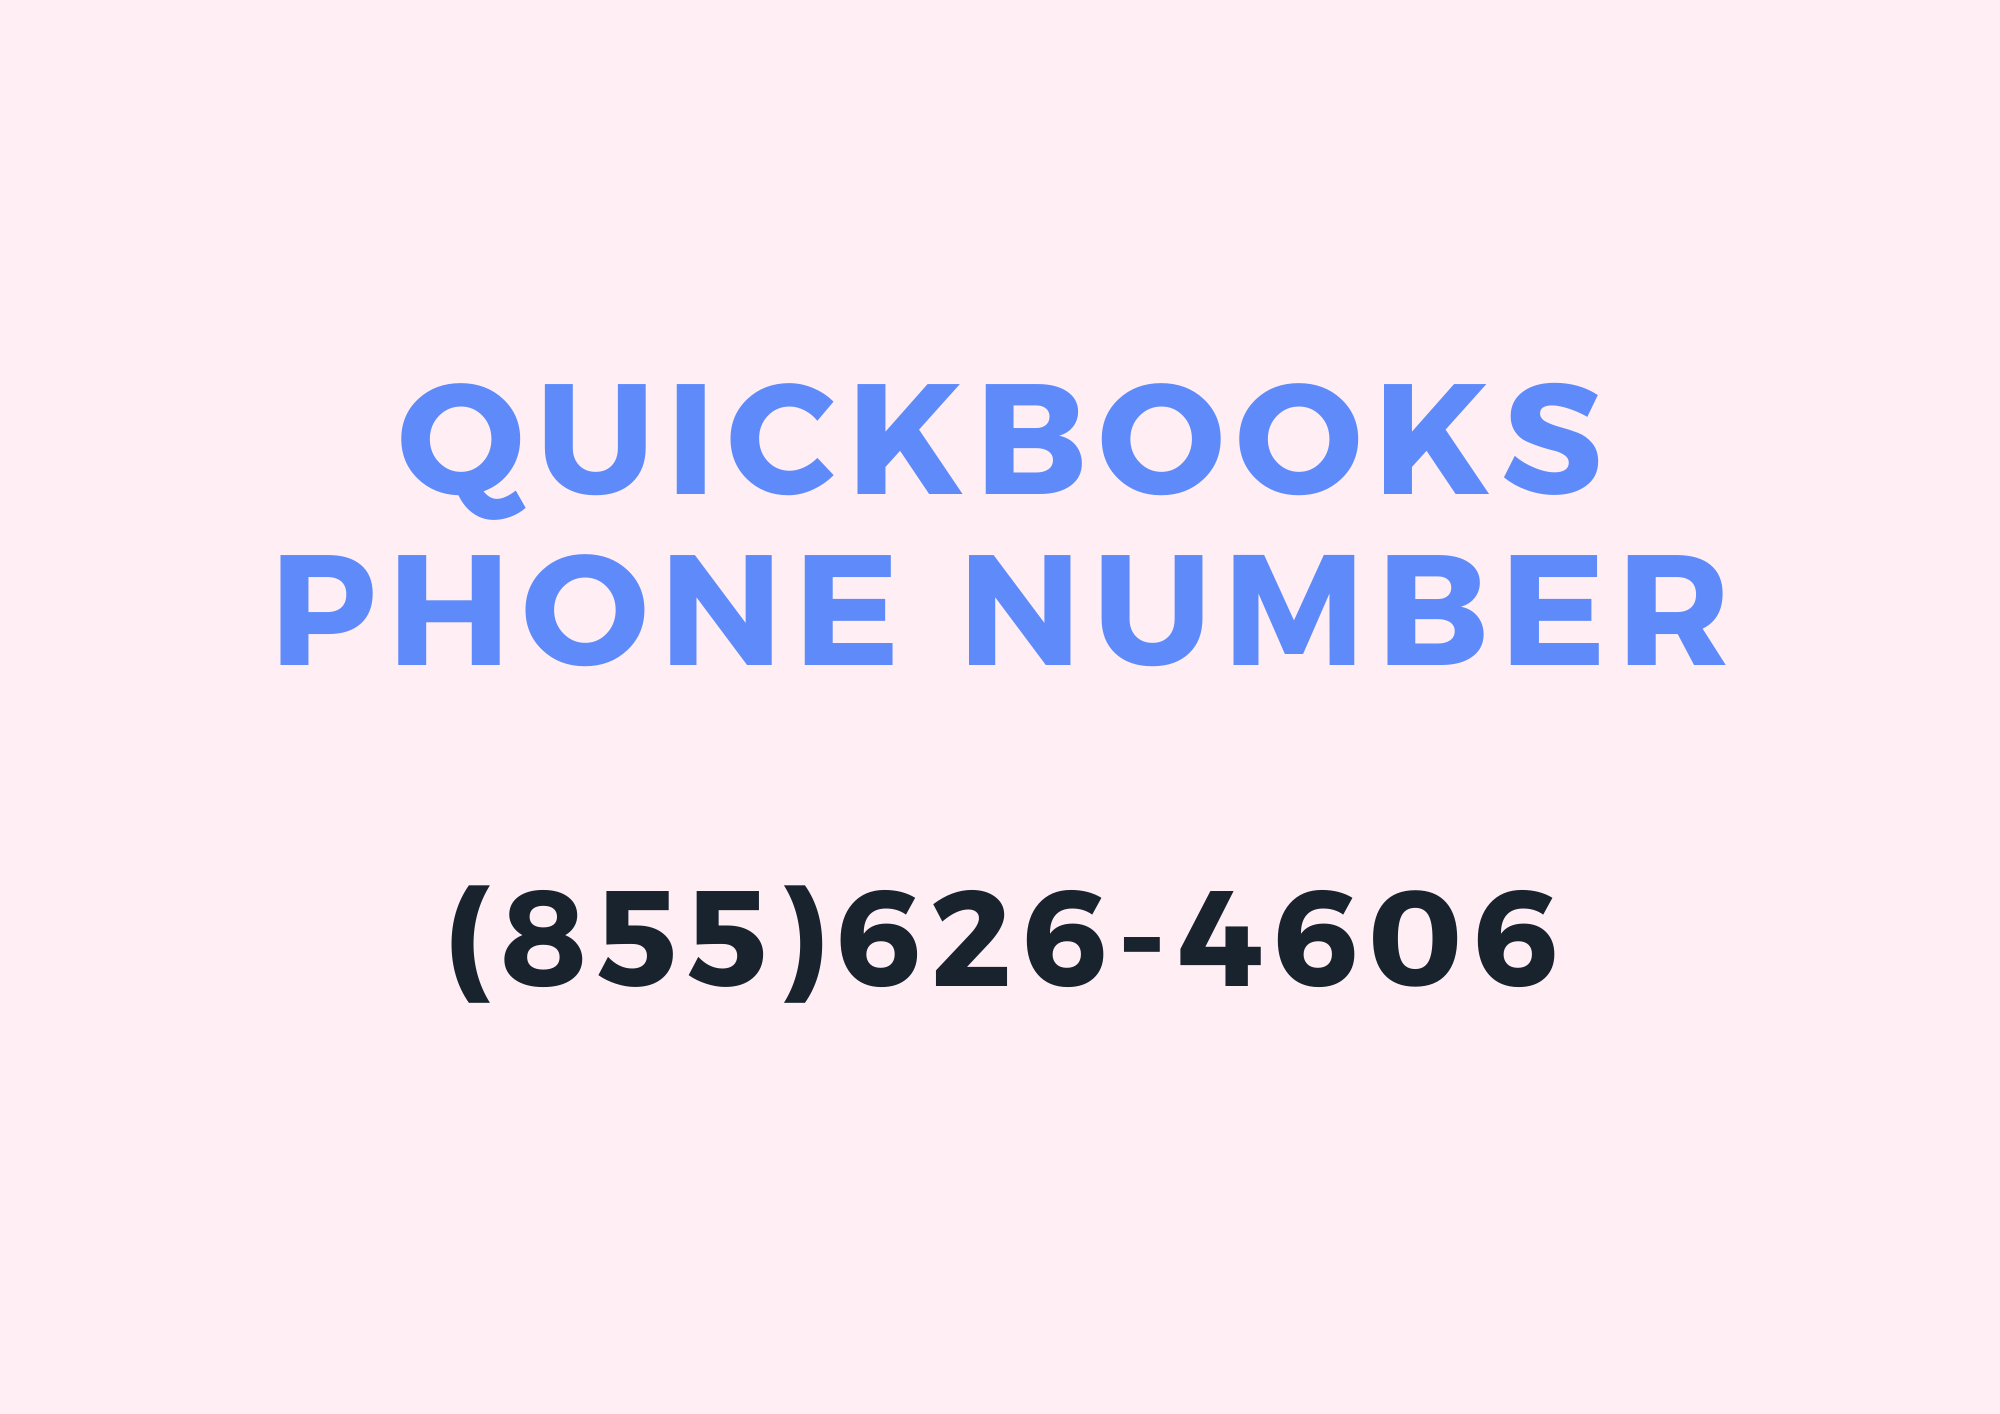 For Top Solutions For All Your QuickBooks Phone Number Problems Call Now to...